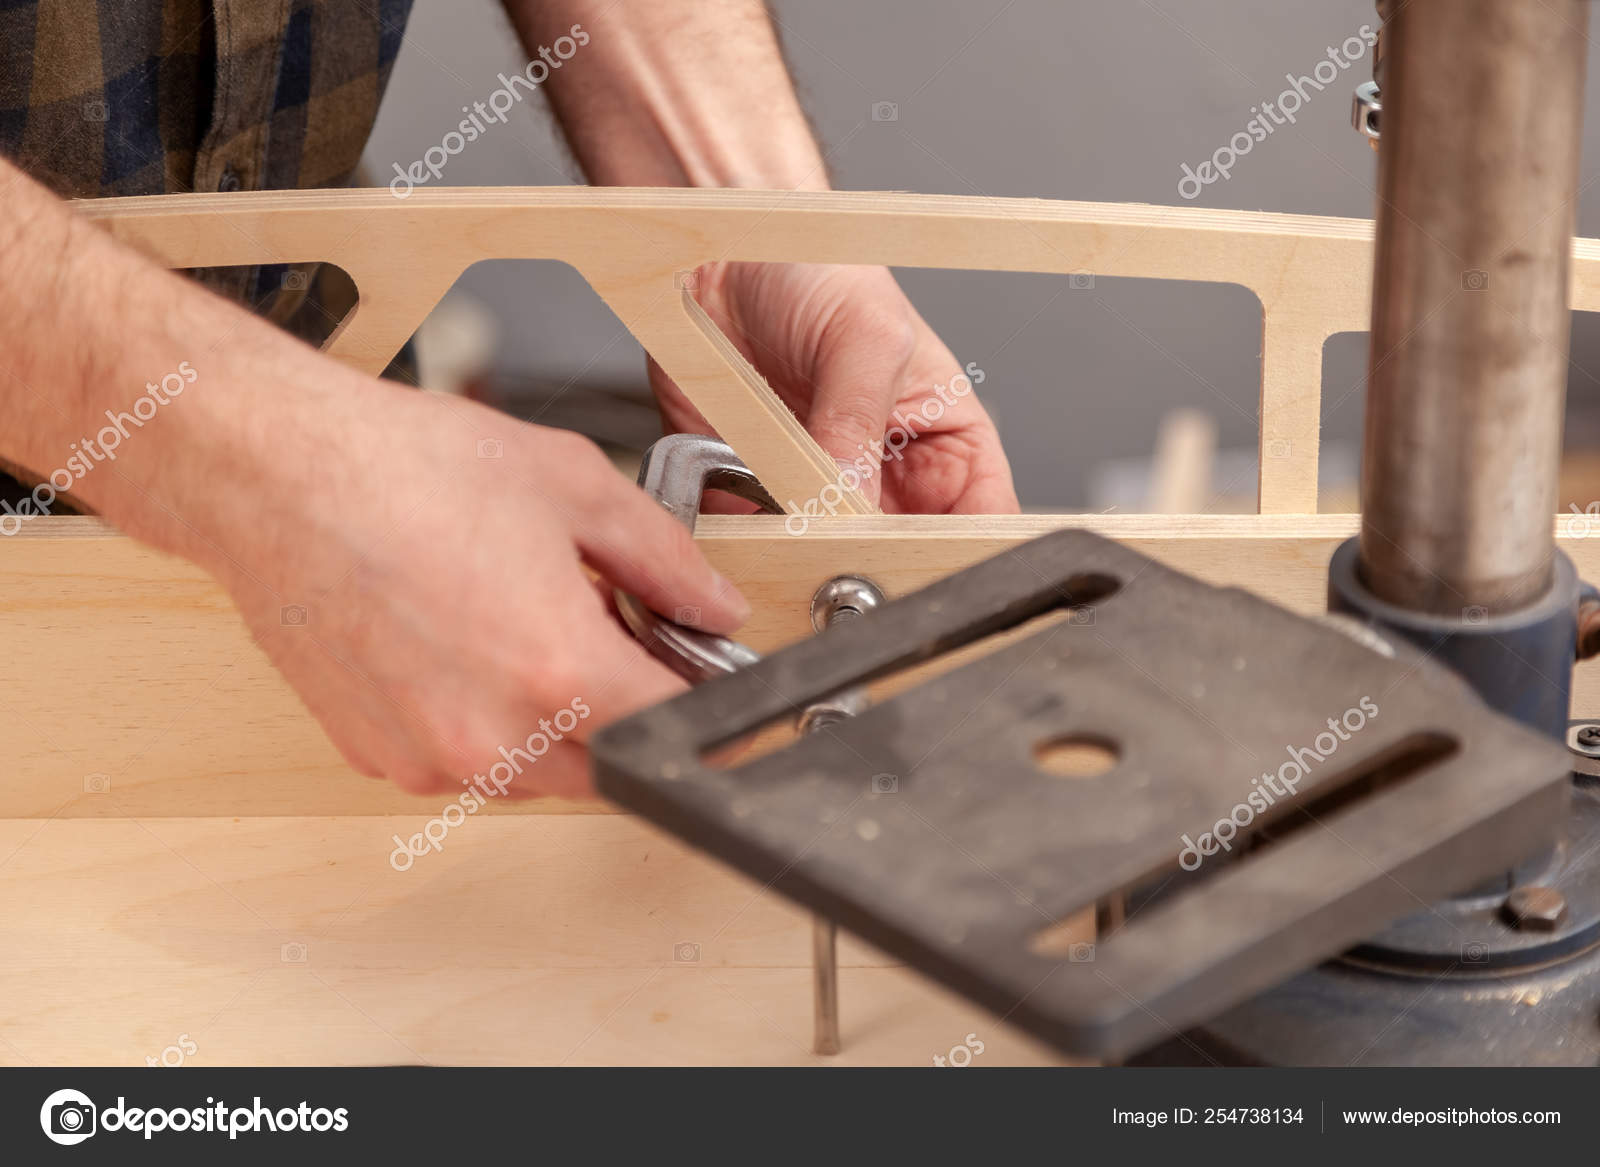 Astounding Home Repair Concepts Close Handicraft Carpentry Cabinet Gmtry Best Dining Table And Chair Ideas Images Gmtryco